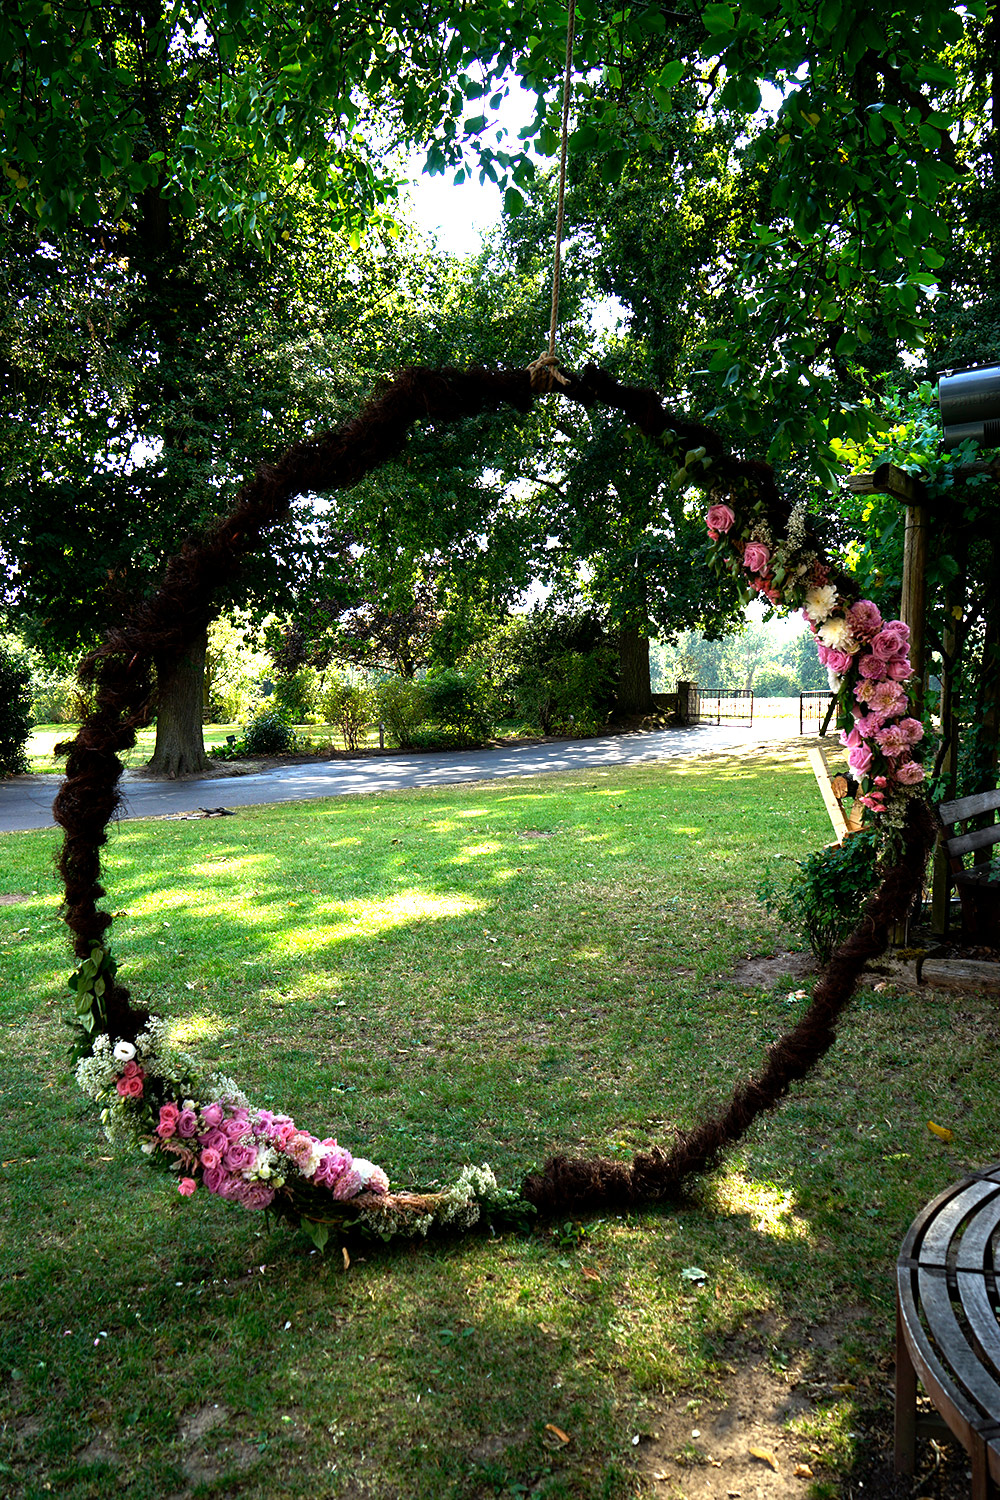 Wedding-Stargate, Flowercircle, Wedding Circle, Fotobox Hintergrund, Traubogen mal anders, Traubogen Blumen